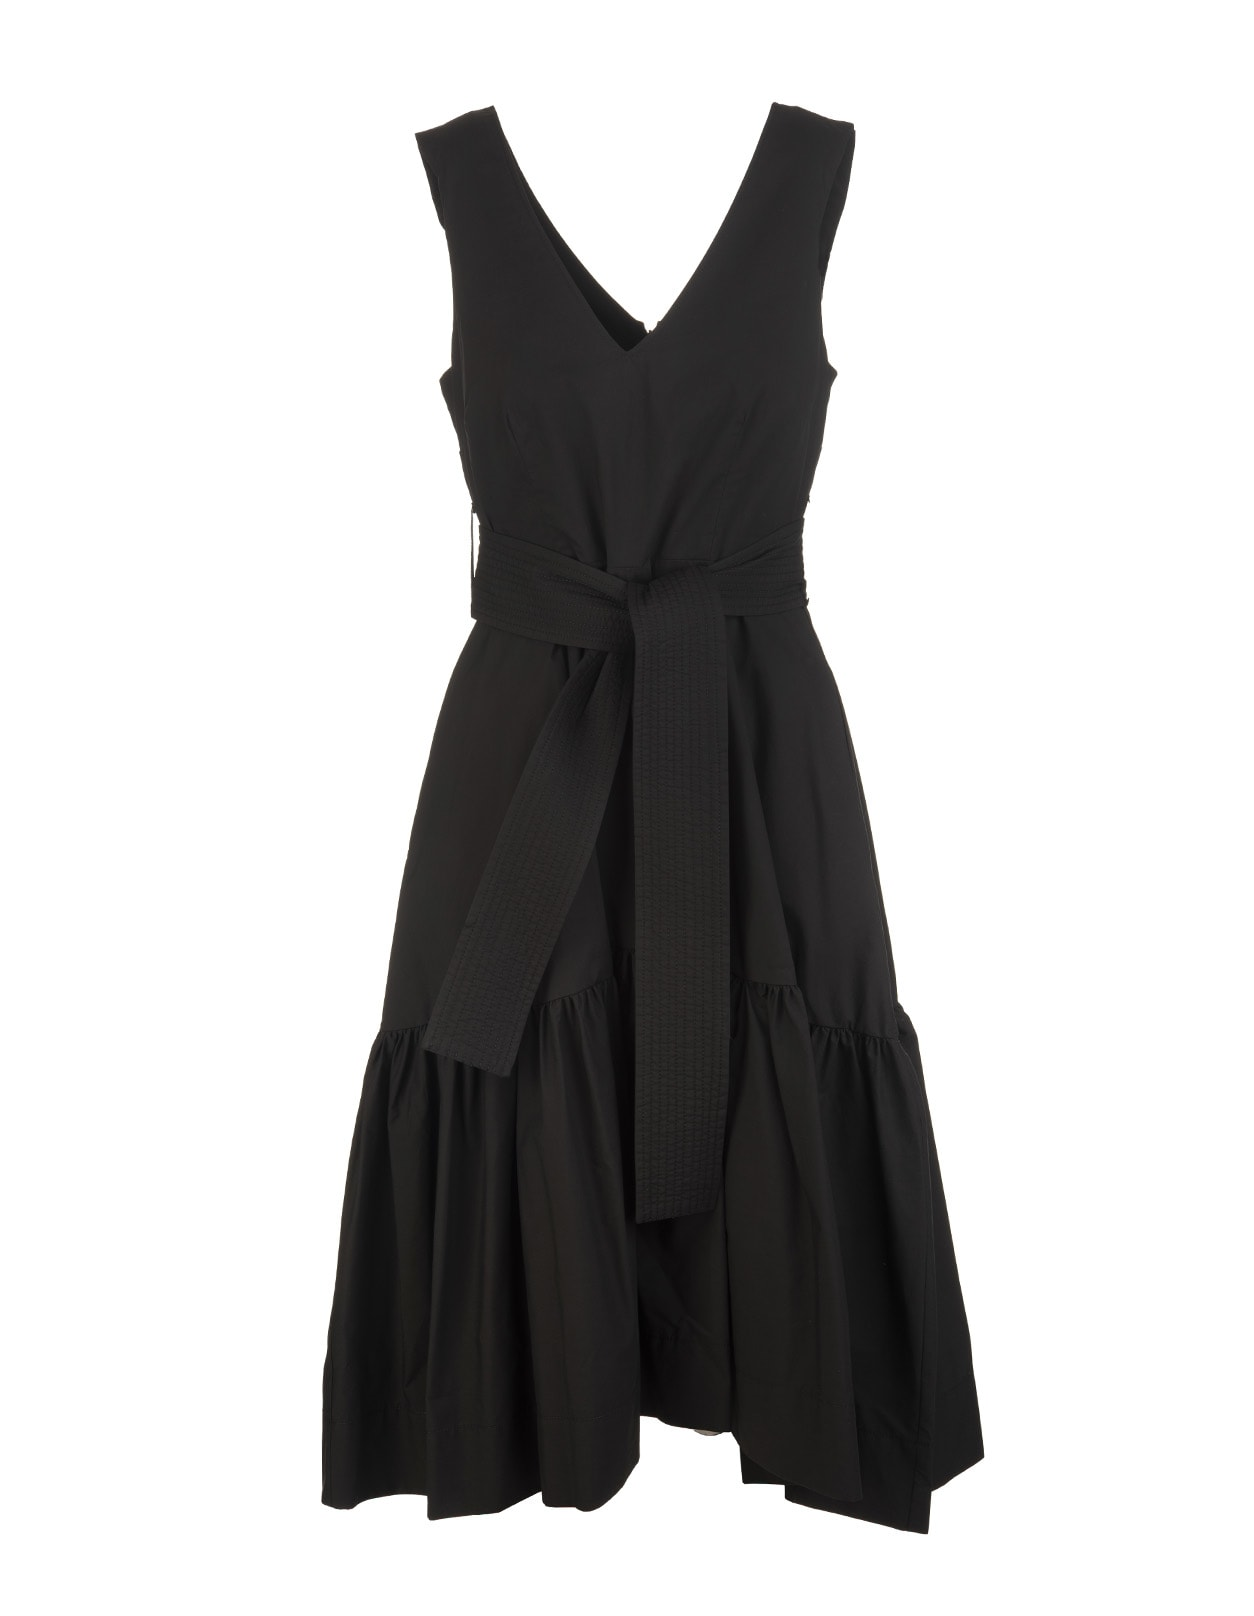 A.R.O.H. short dress in black cotton with front and back V-neck, armhole, soft skirt with horizontal bands, back zip closure and waist highlighted by a belt in tone with front knot. Composition: 100% Cotton